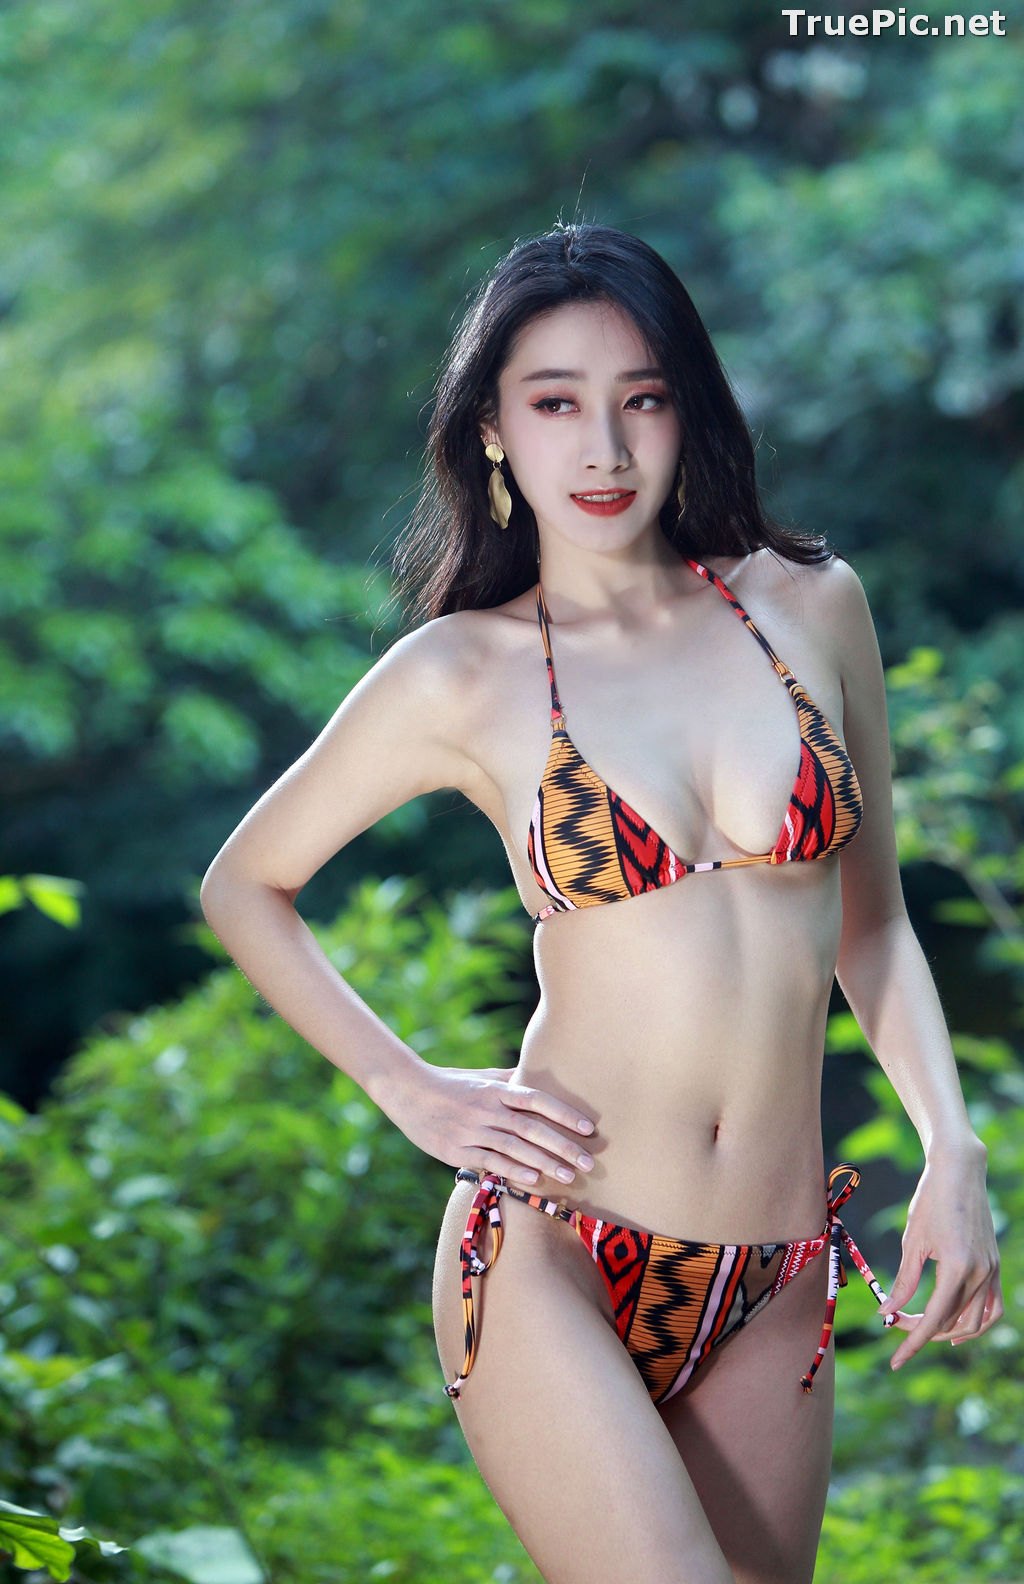 Image Taiwanese Model - 段璟樂 - Lovely and Sexy Bikini Baby - TruePic.net - Picture-5